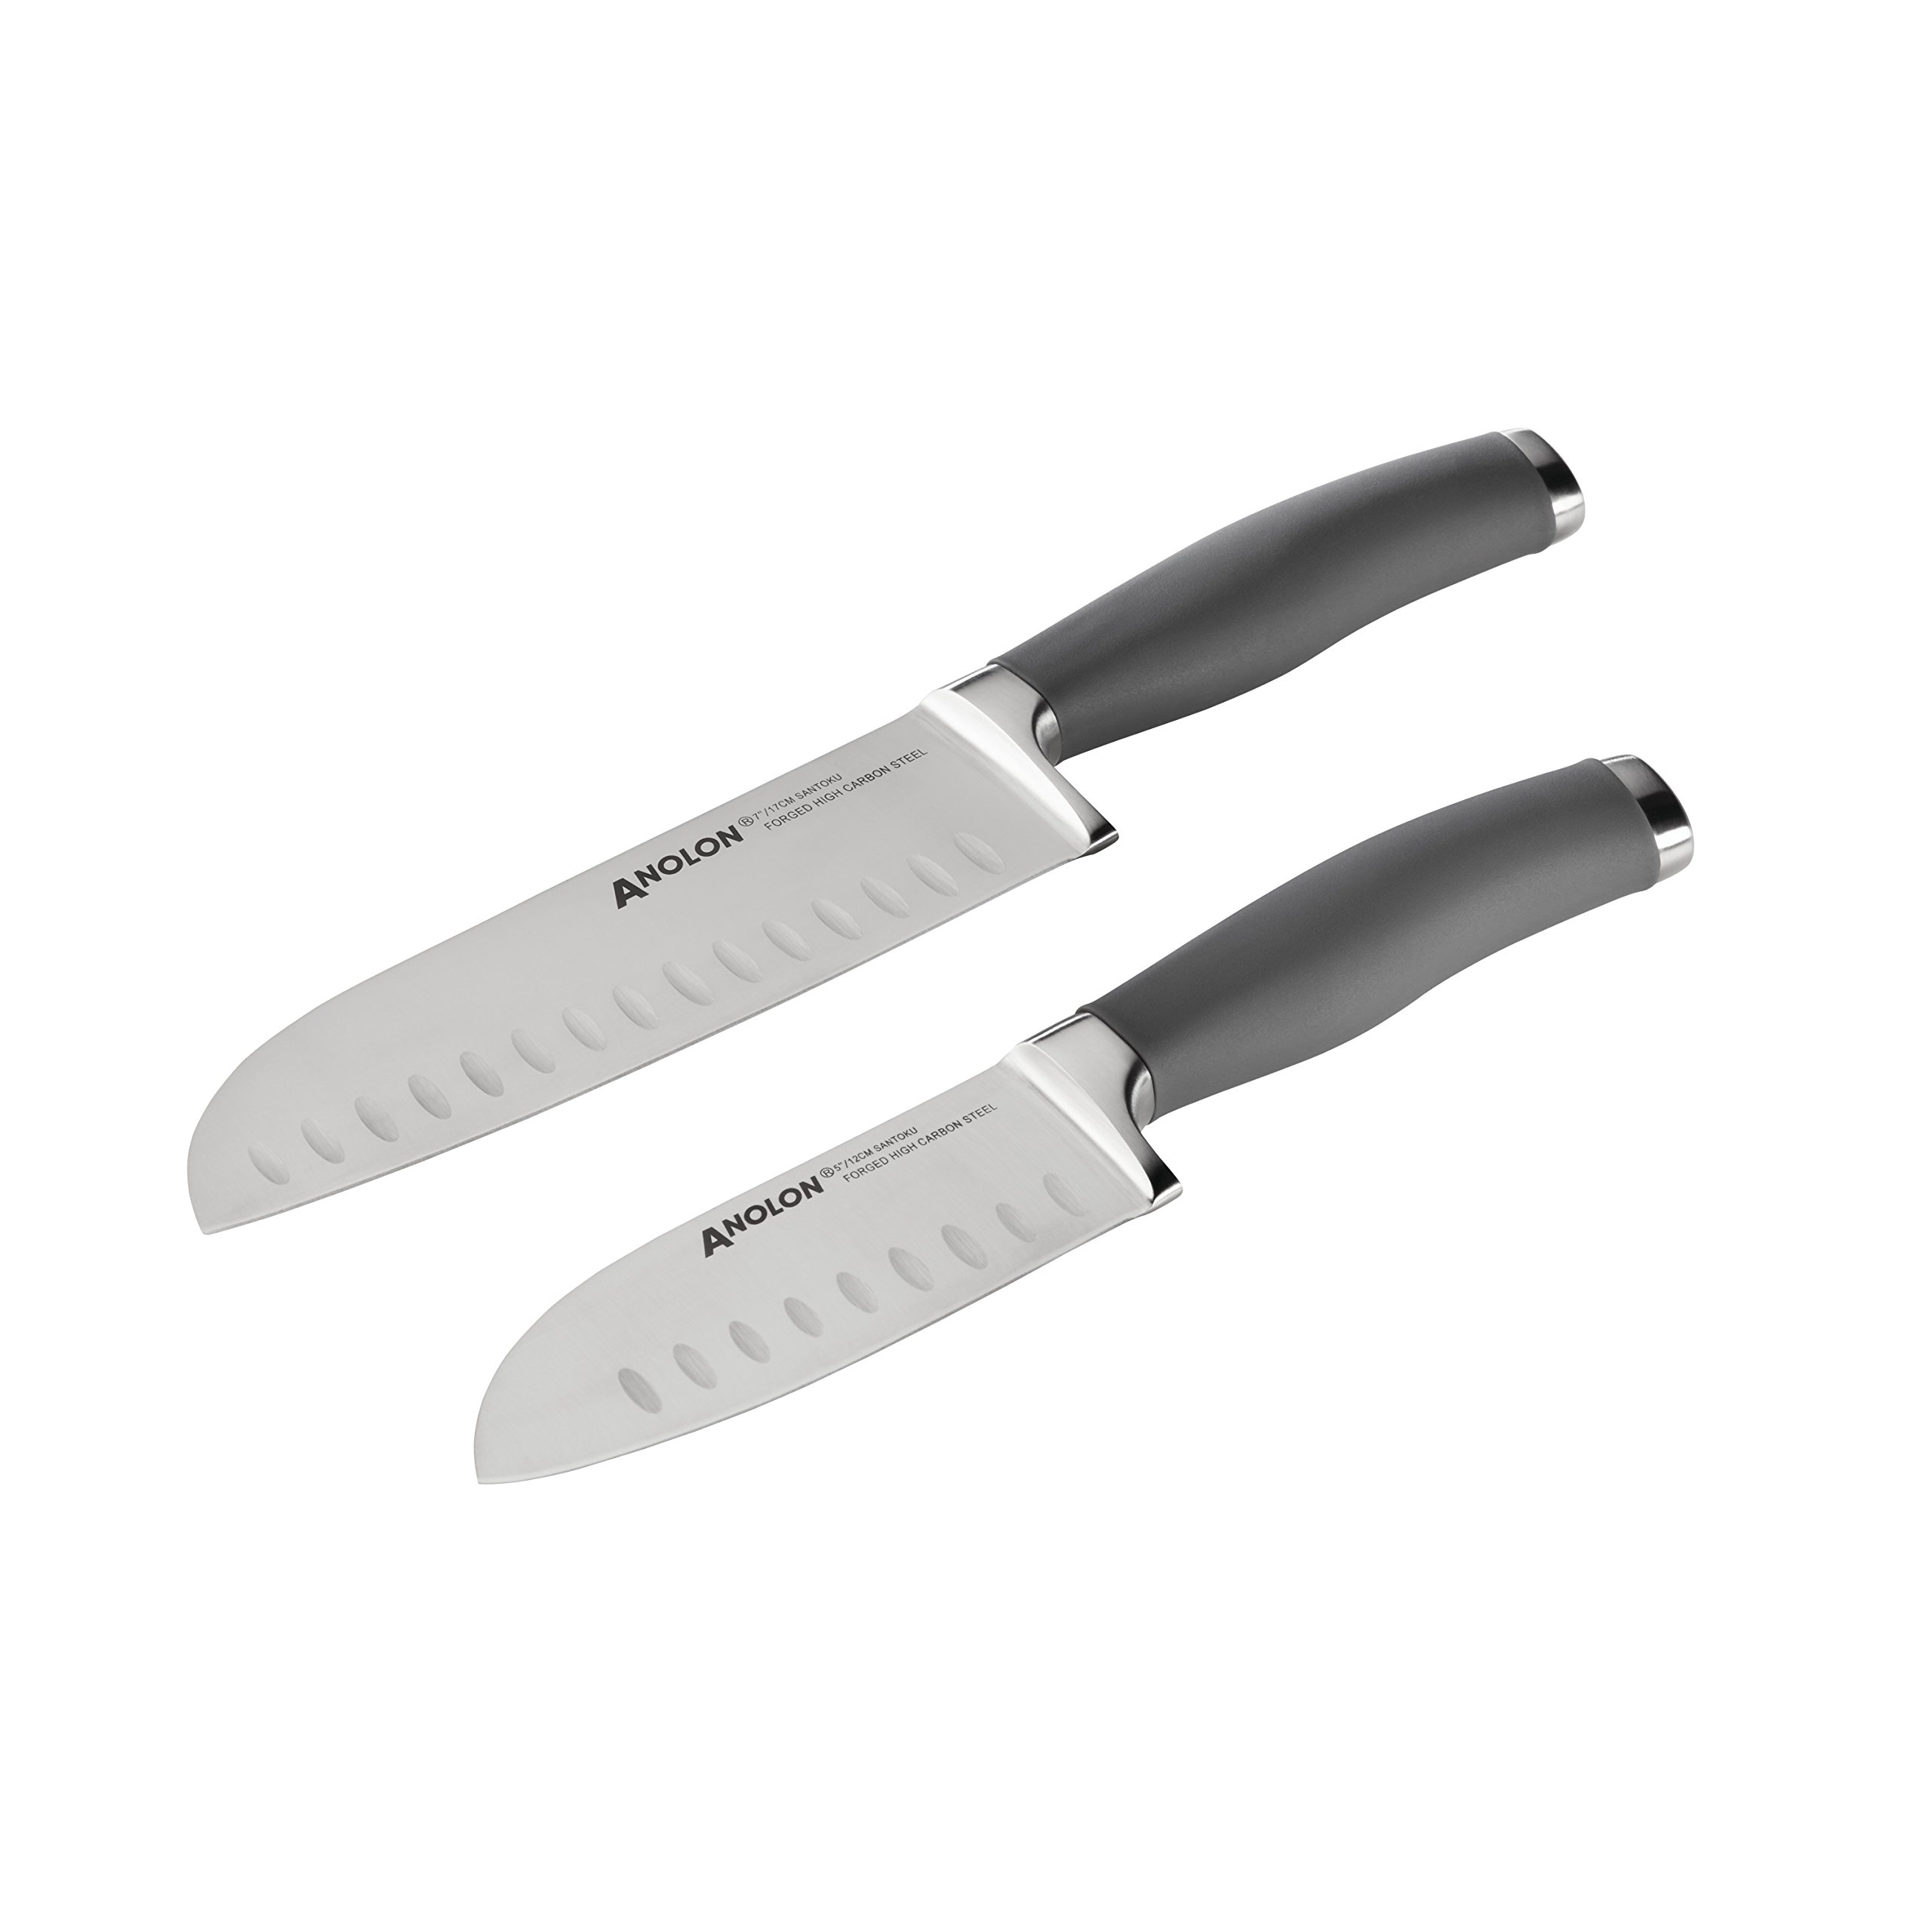 Anolon SureGrip Cutlery 2-Piece Japanese Stainless Steel Santoku Knife Set with Sheaths, Gray by Anolon